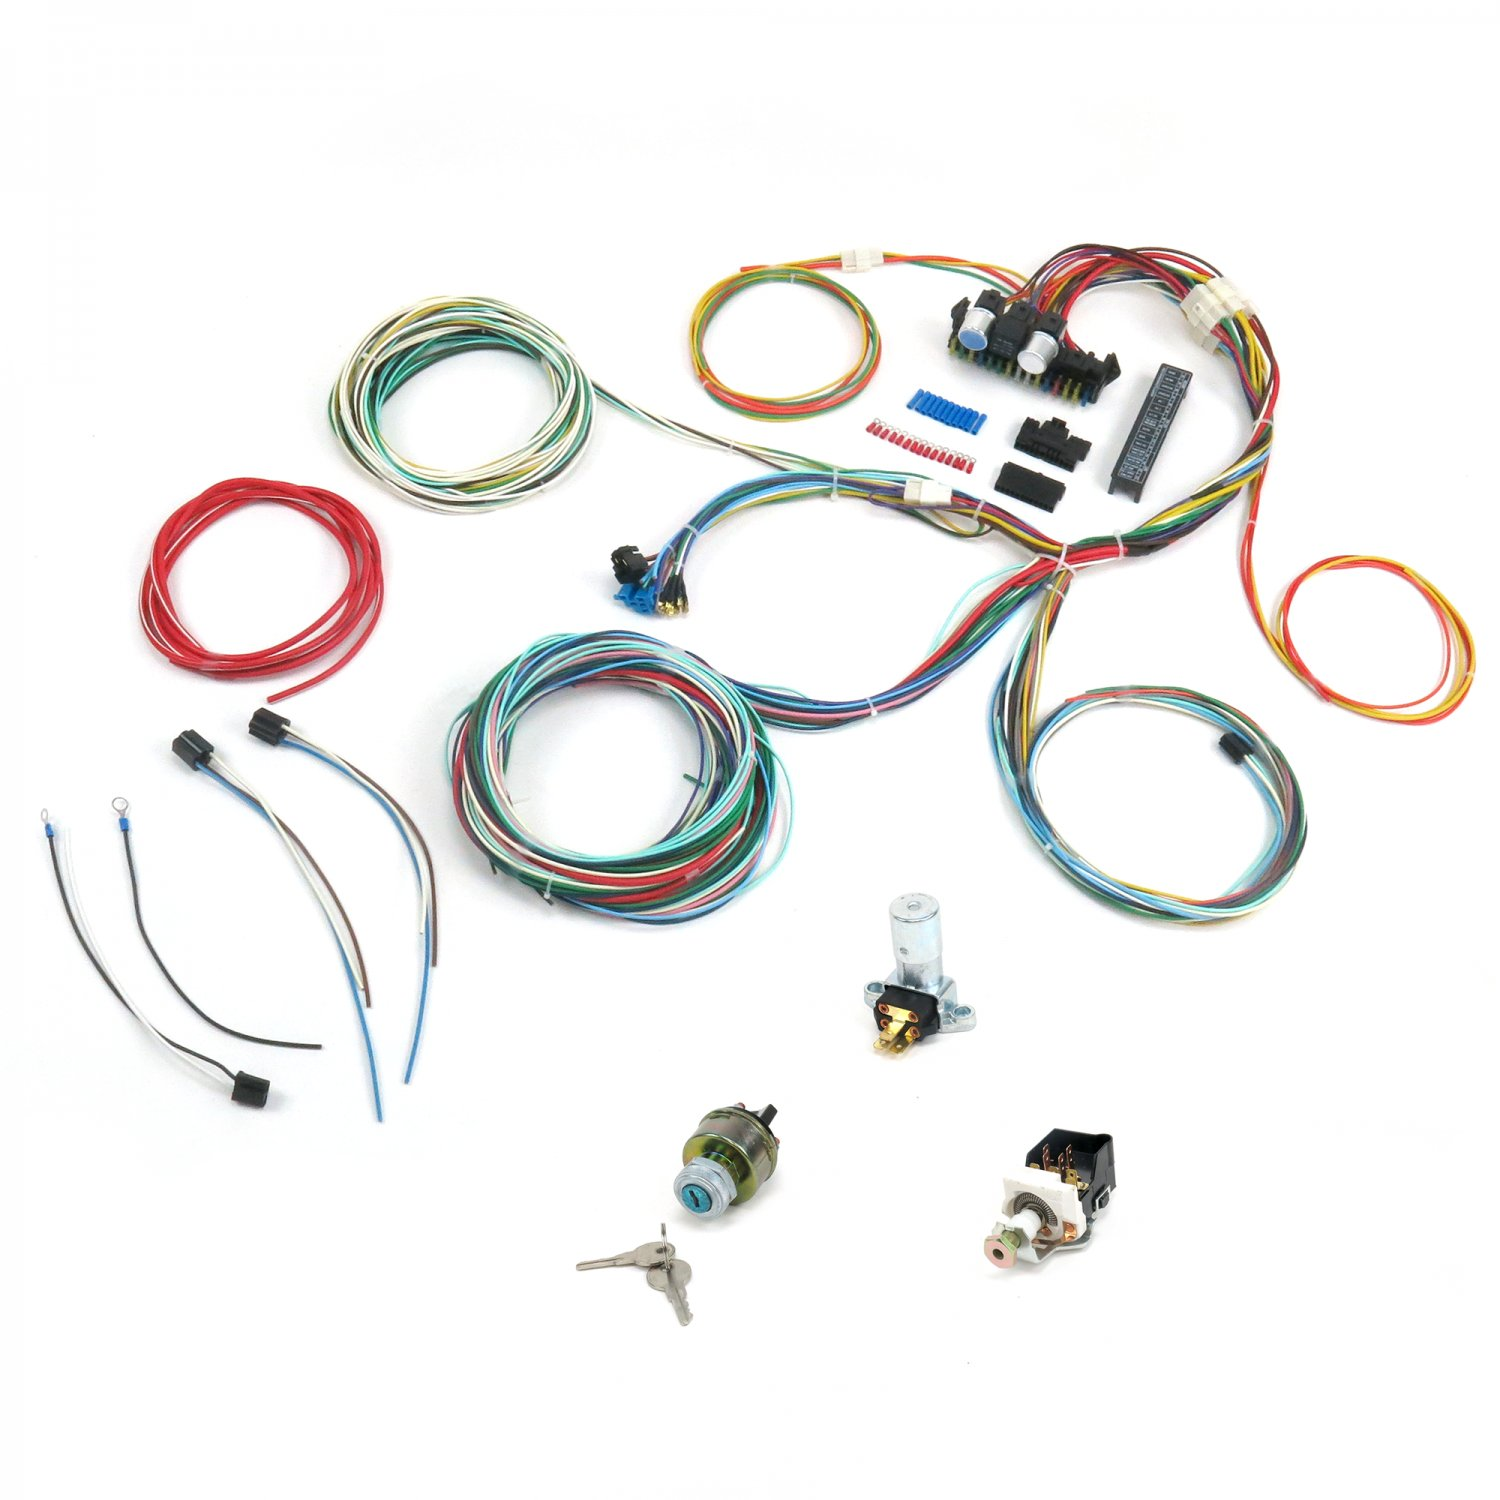 hight resolution of 1978 cj7 ez wiring harness